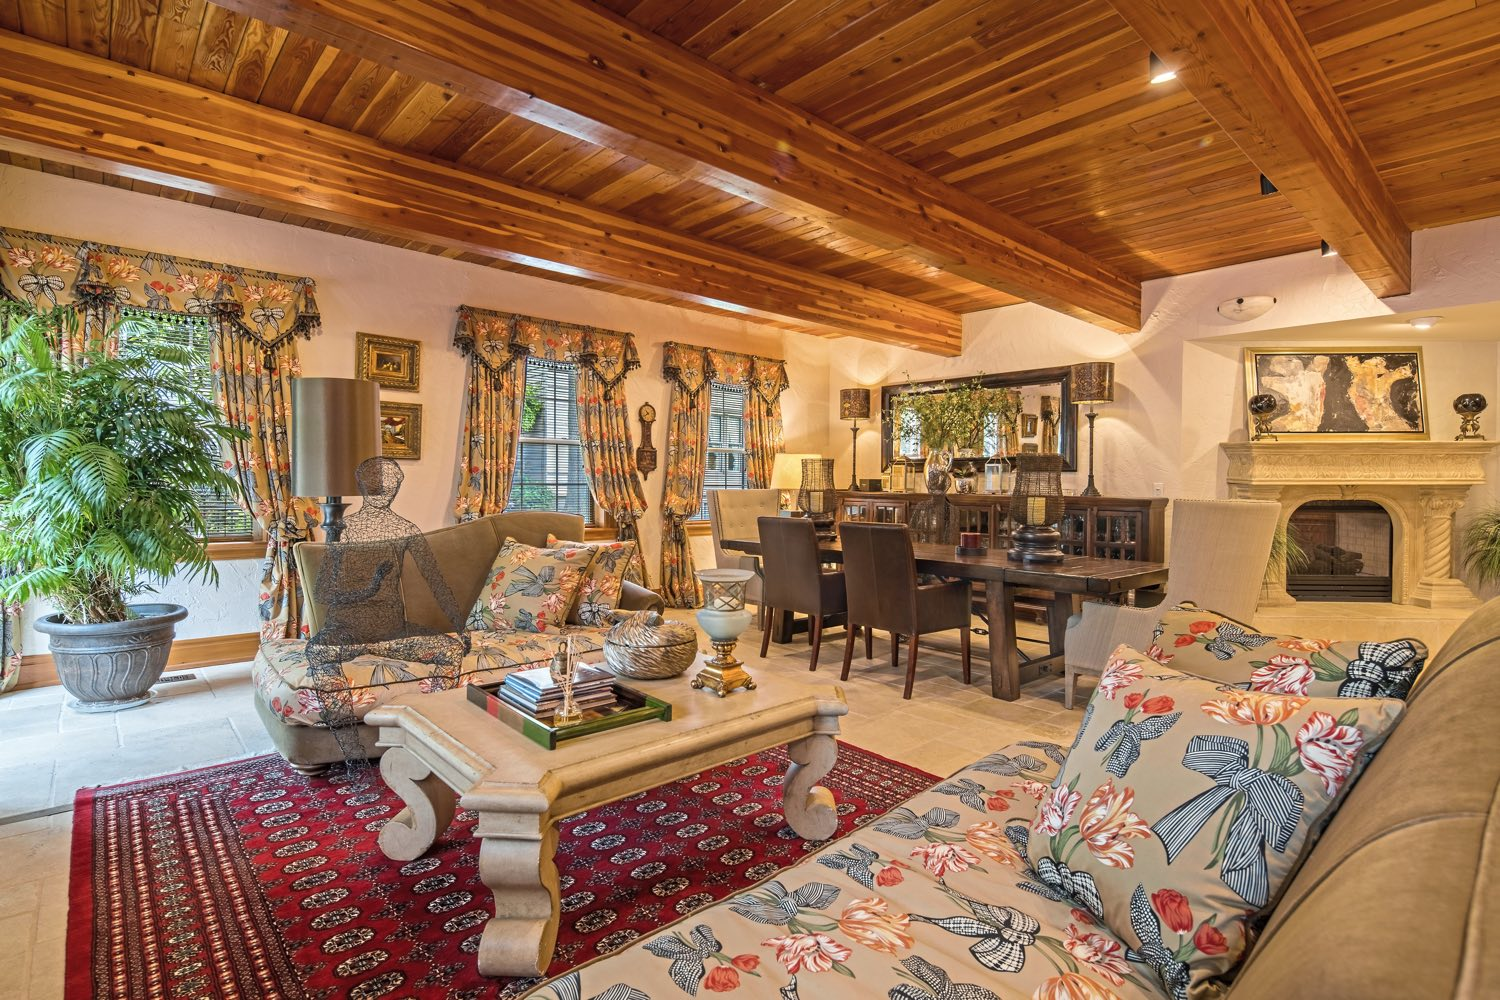 The Family Room with fireplace and pine ceilings at 5228 Westminster, Shadyside. (Howard Hanna Real Estate)